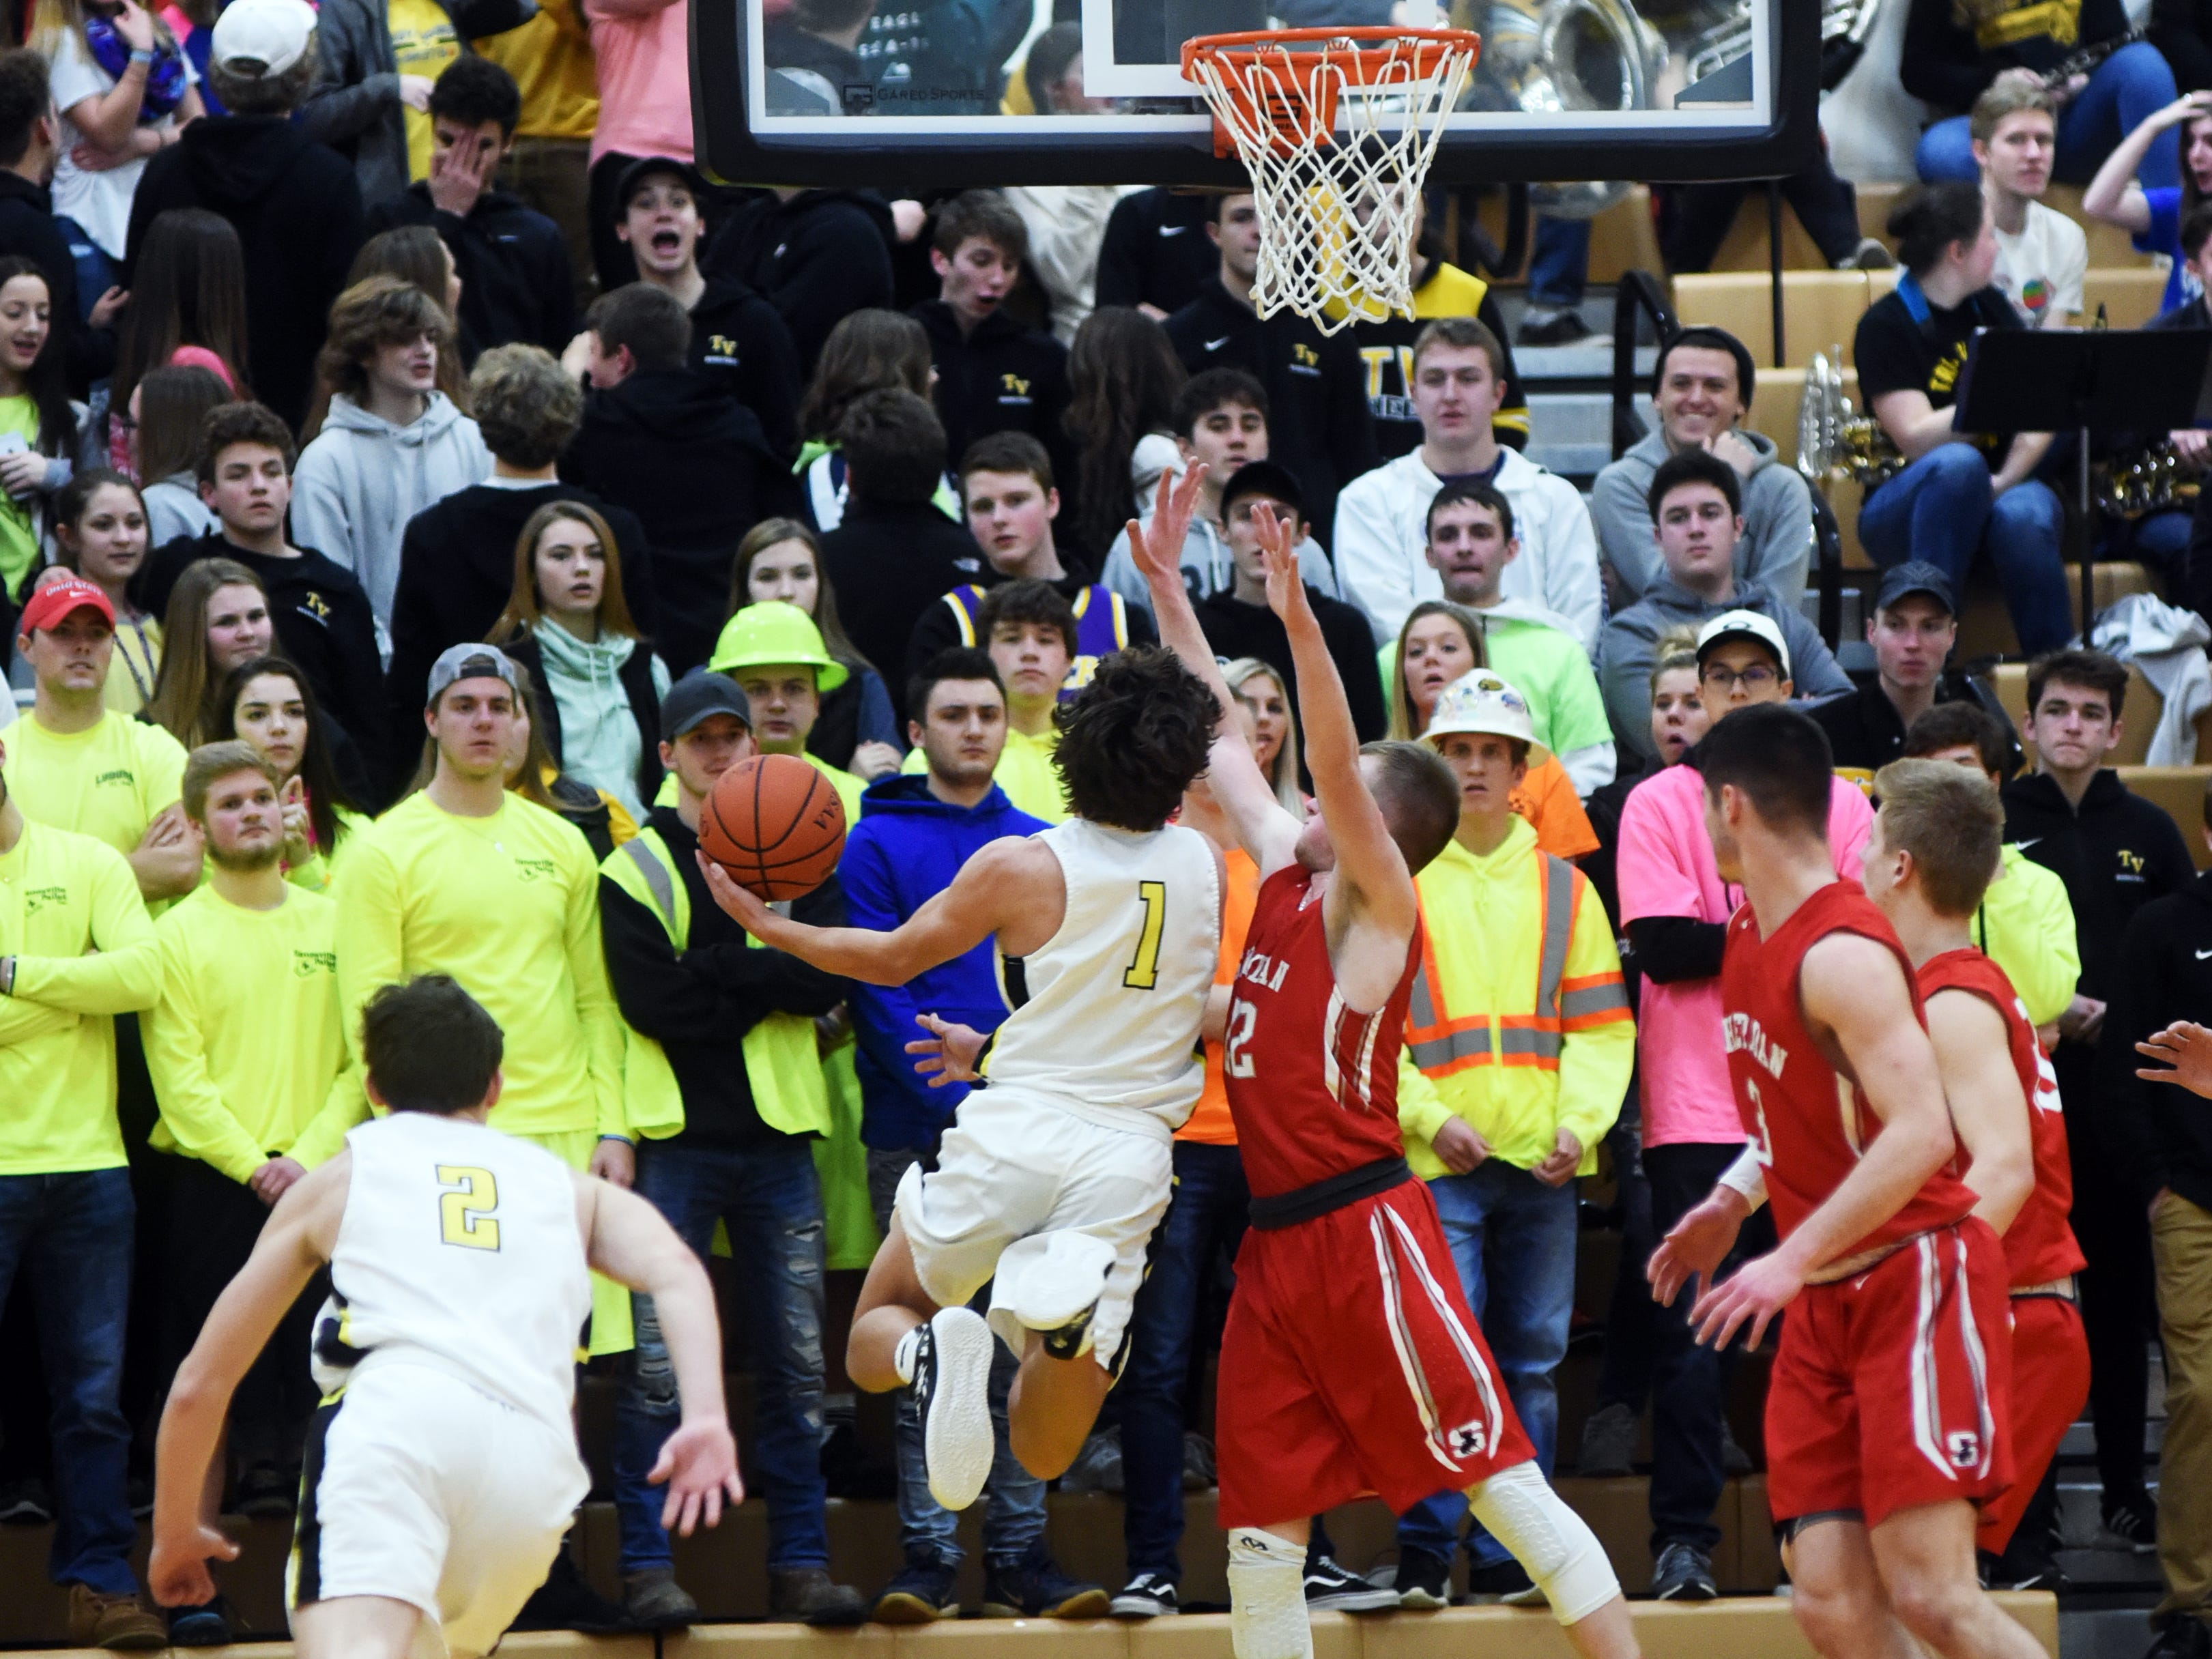 Tri-Valley's Ty Smith goes up in the lane against Sheridan's Landen Russell on Friday night in Dresden.